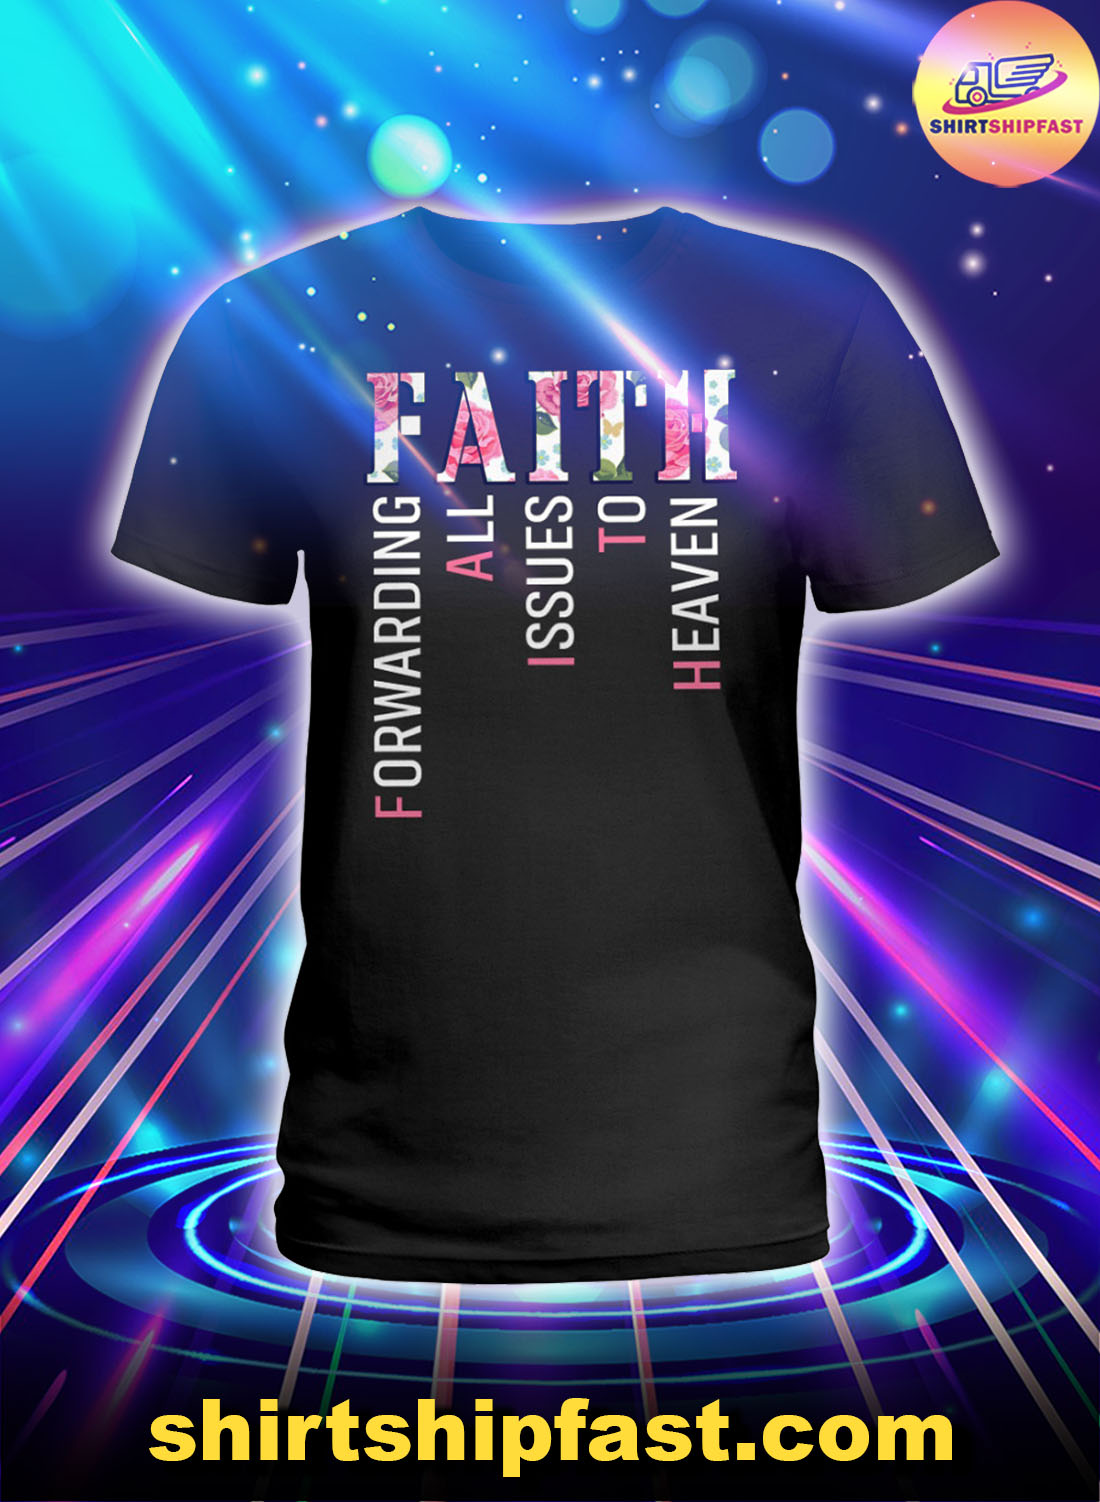 qIFJO6OB-Faith-forwarding-all-issues-to-heaven-floral-lady-shirt-1